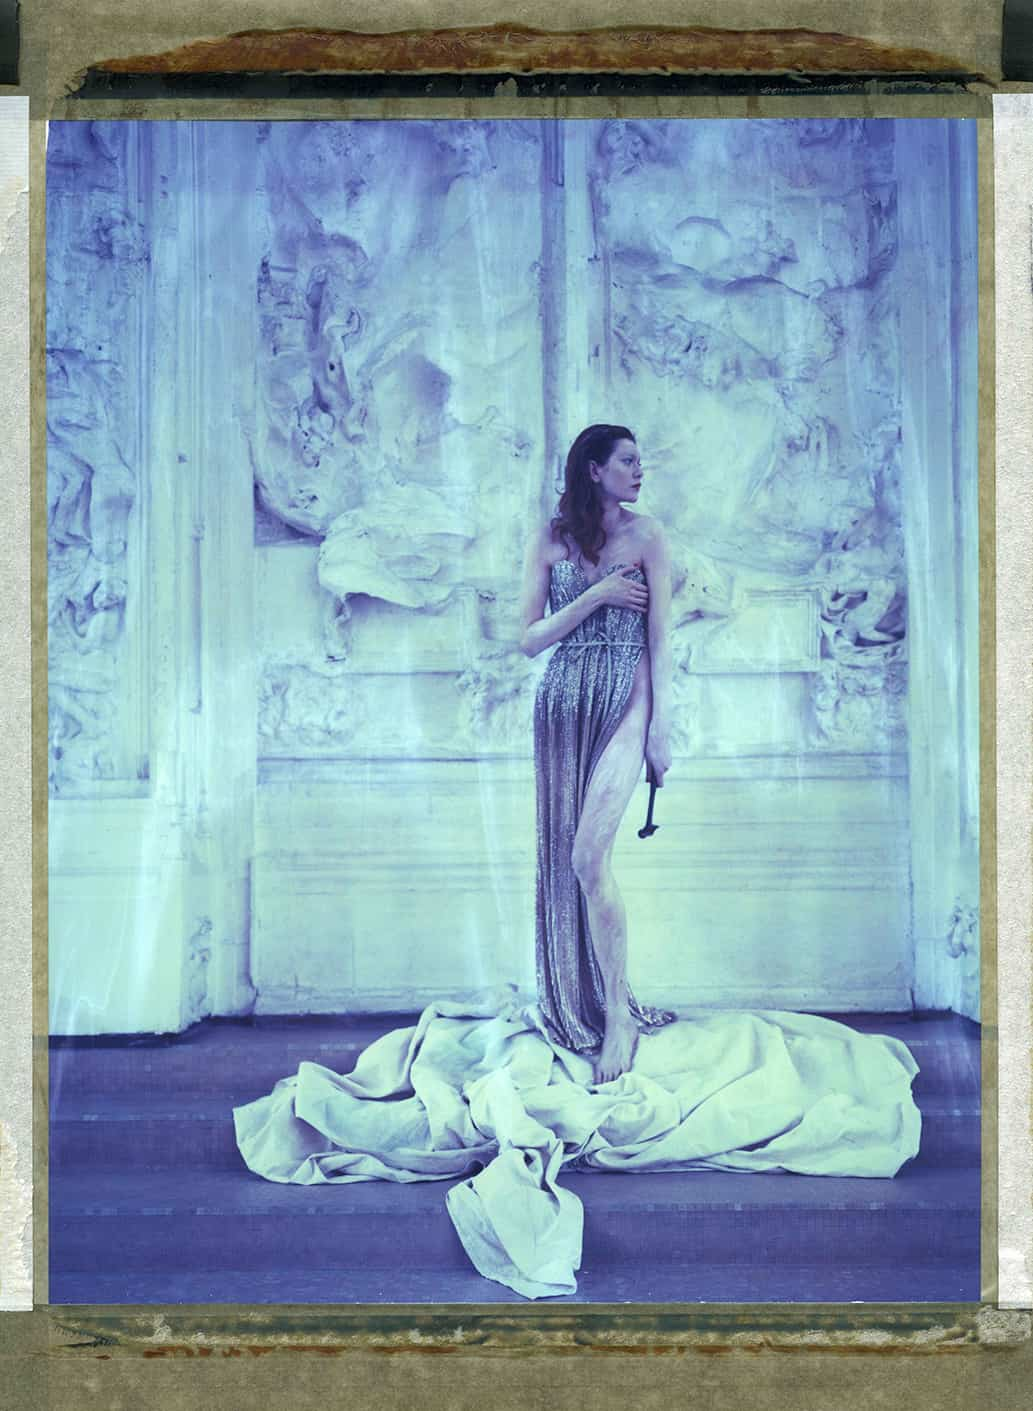 """Fine Art color photography with fashion model wearing Haute Couture by Elie Saab, photographed in front of August Rodin's art work """"The Gates of Hell"""" at the Musée Rodin Meudon. The photograph is an hommage to Edward Steichen."""